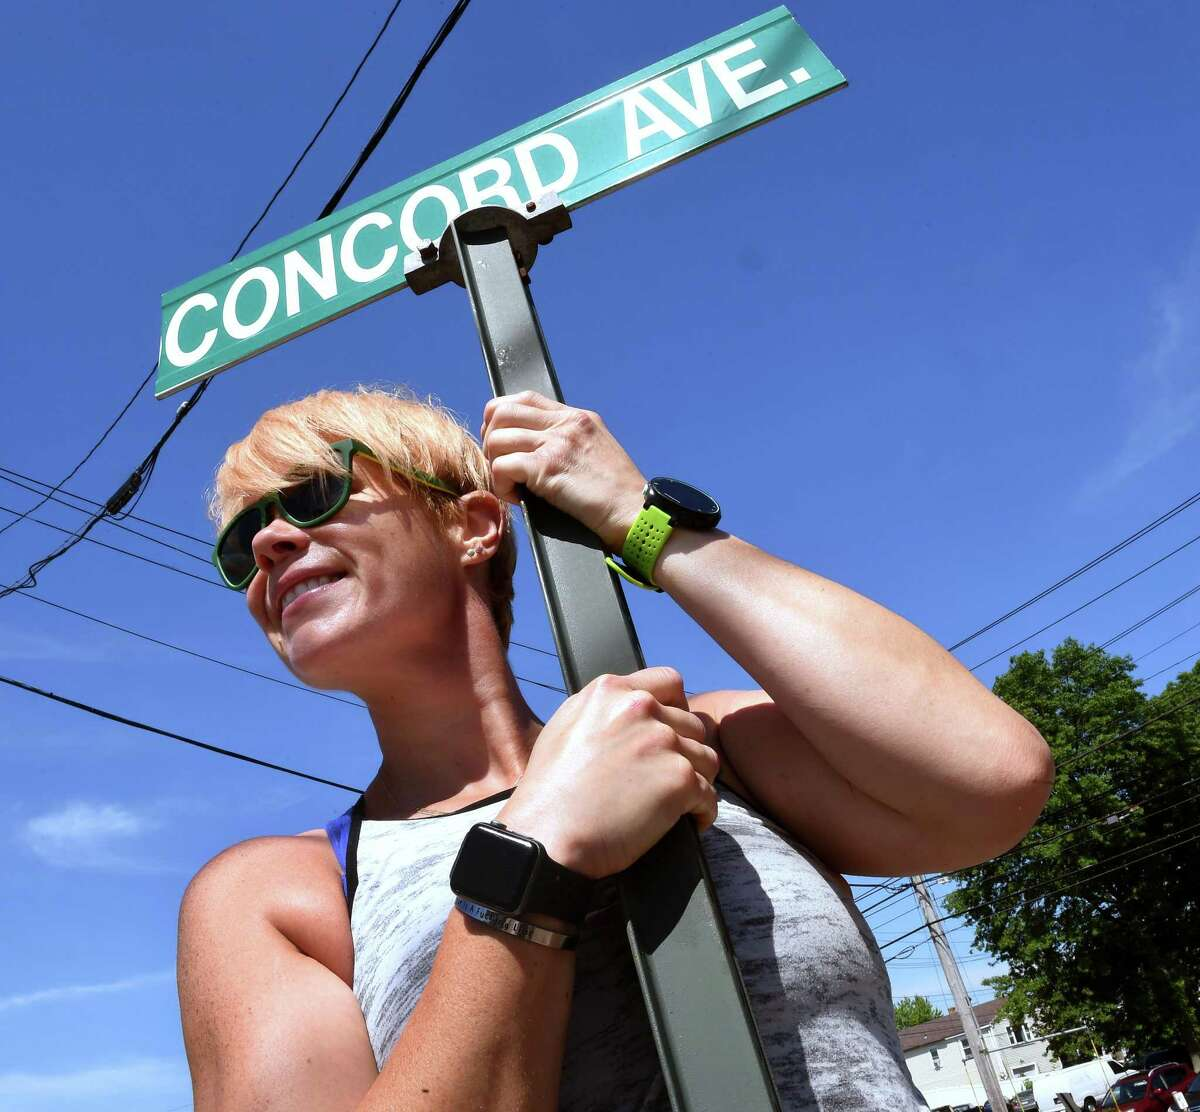 Tiffany McGuire holds onto the Concord Avenue street sign in Milford on June 18, 2021 where she began her quest to run on every street in the town.